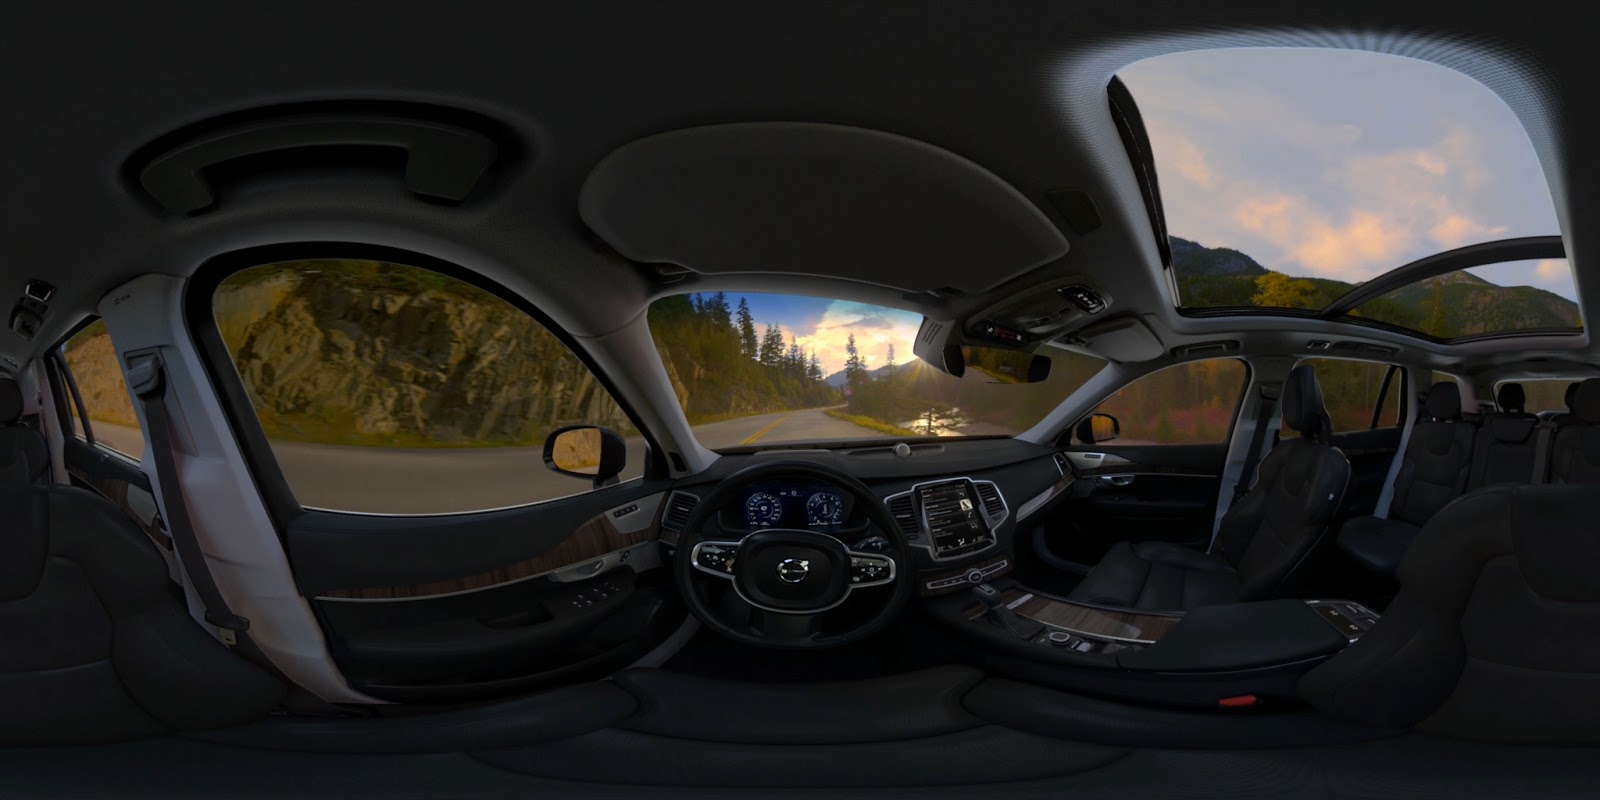 Volvo Test Drive - Virtual Reality